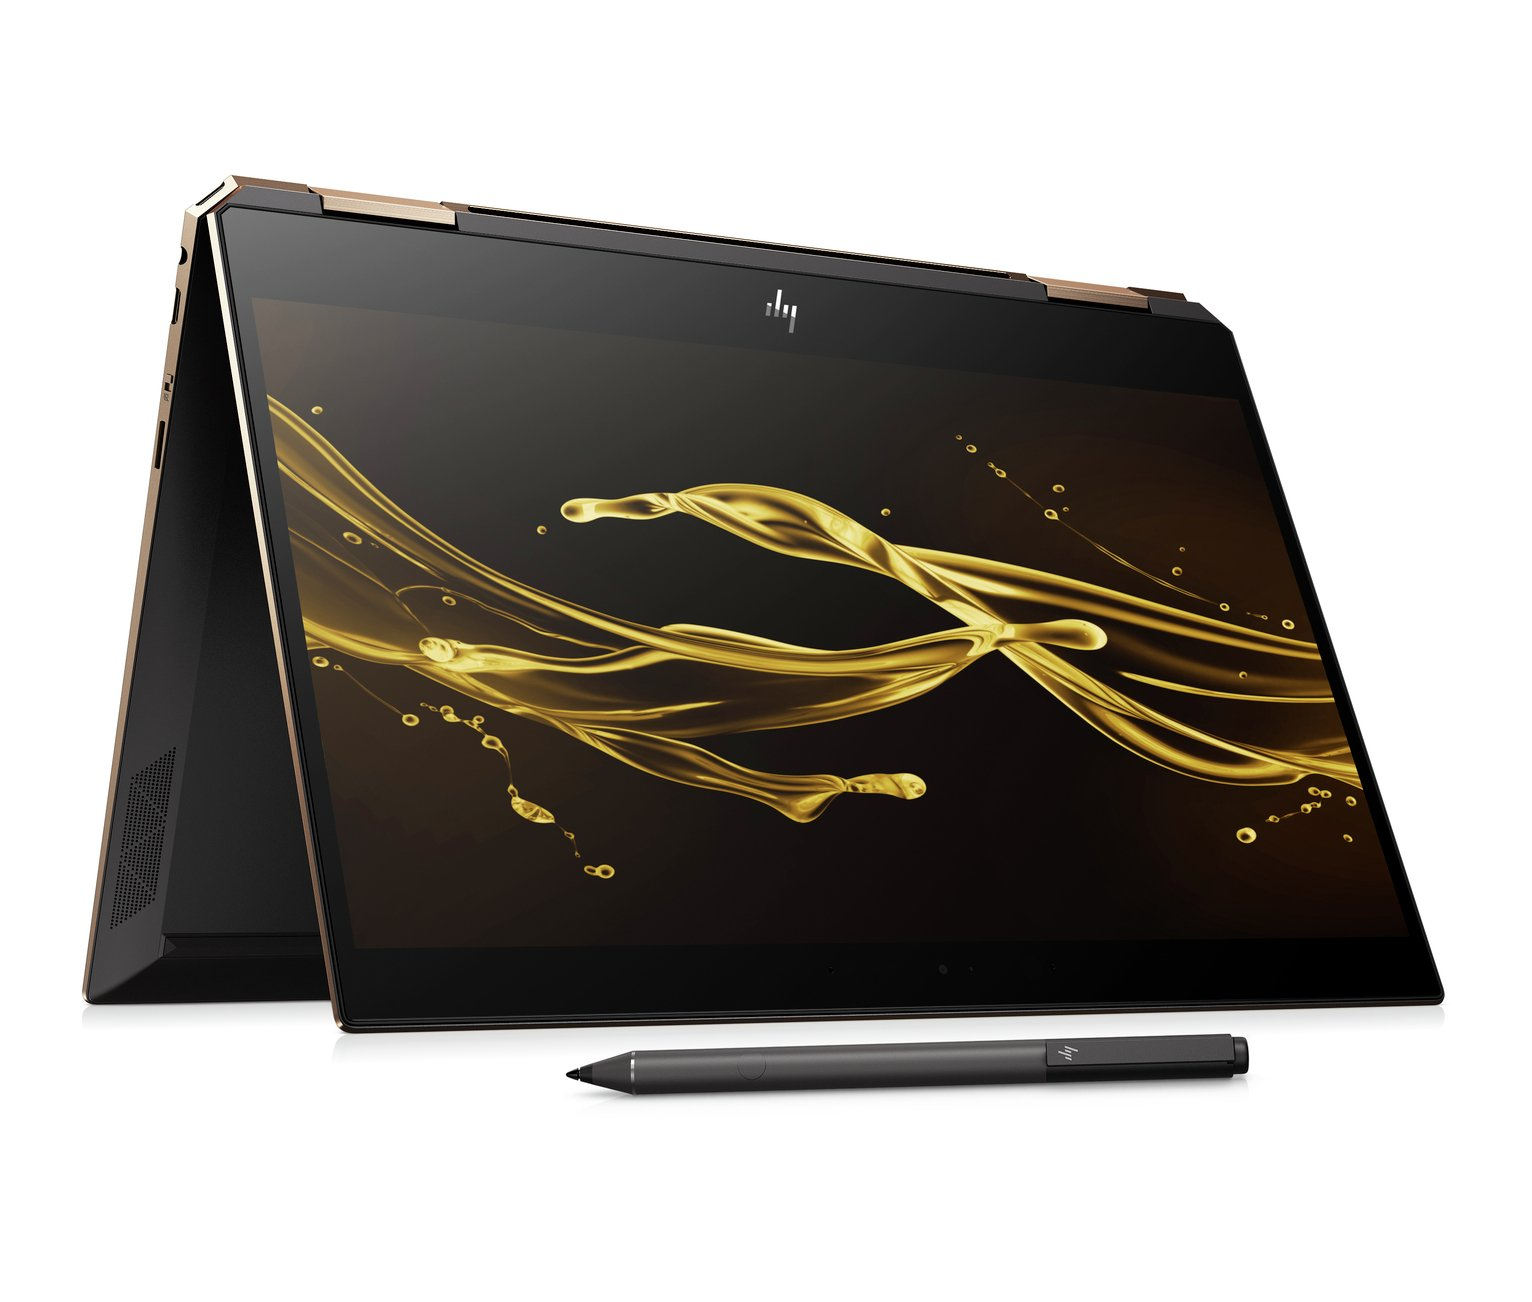 HP Spectre 13.3 Inch X360 i5 8GB 256GB FHD Laptop